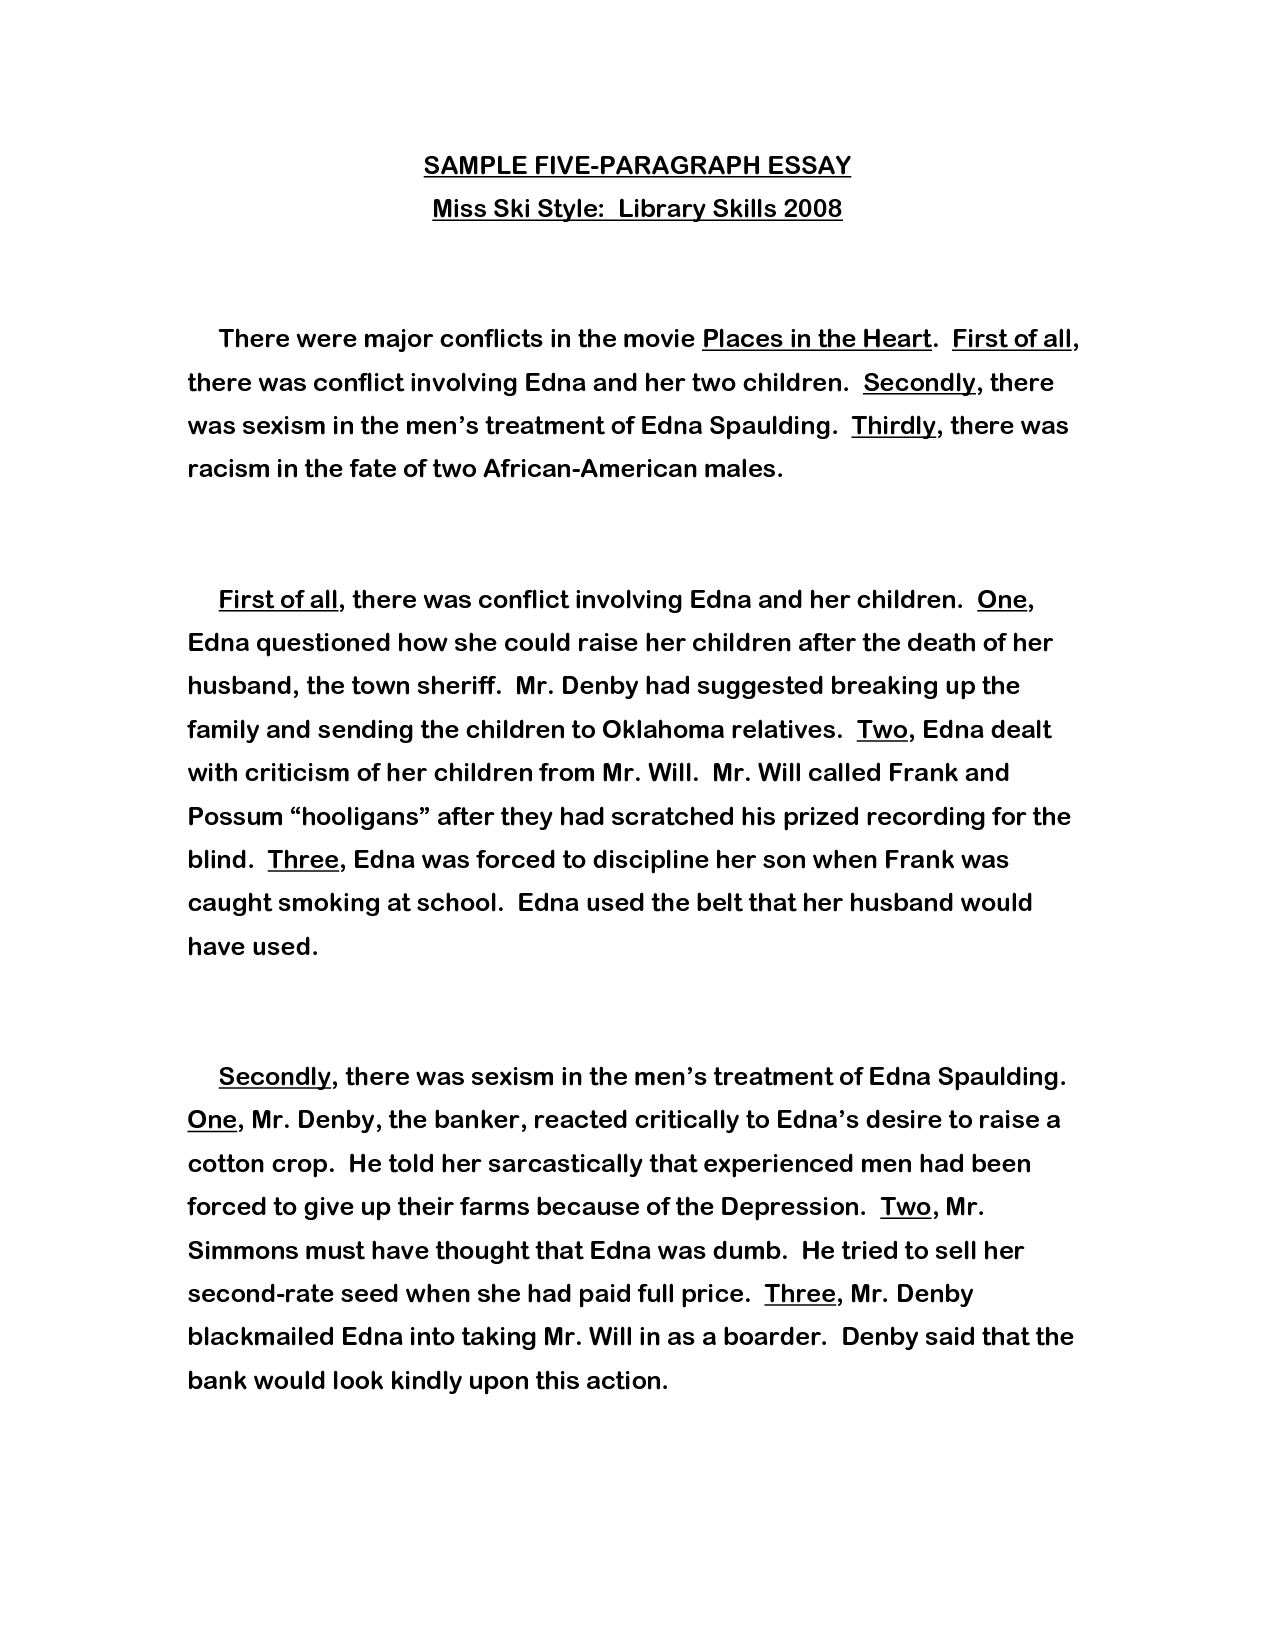 5 paragraph essay example on quotes  5 paragraph essay example on quotes